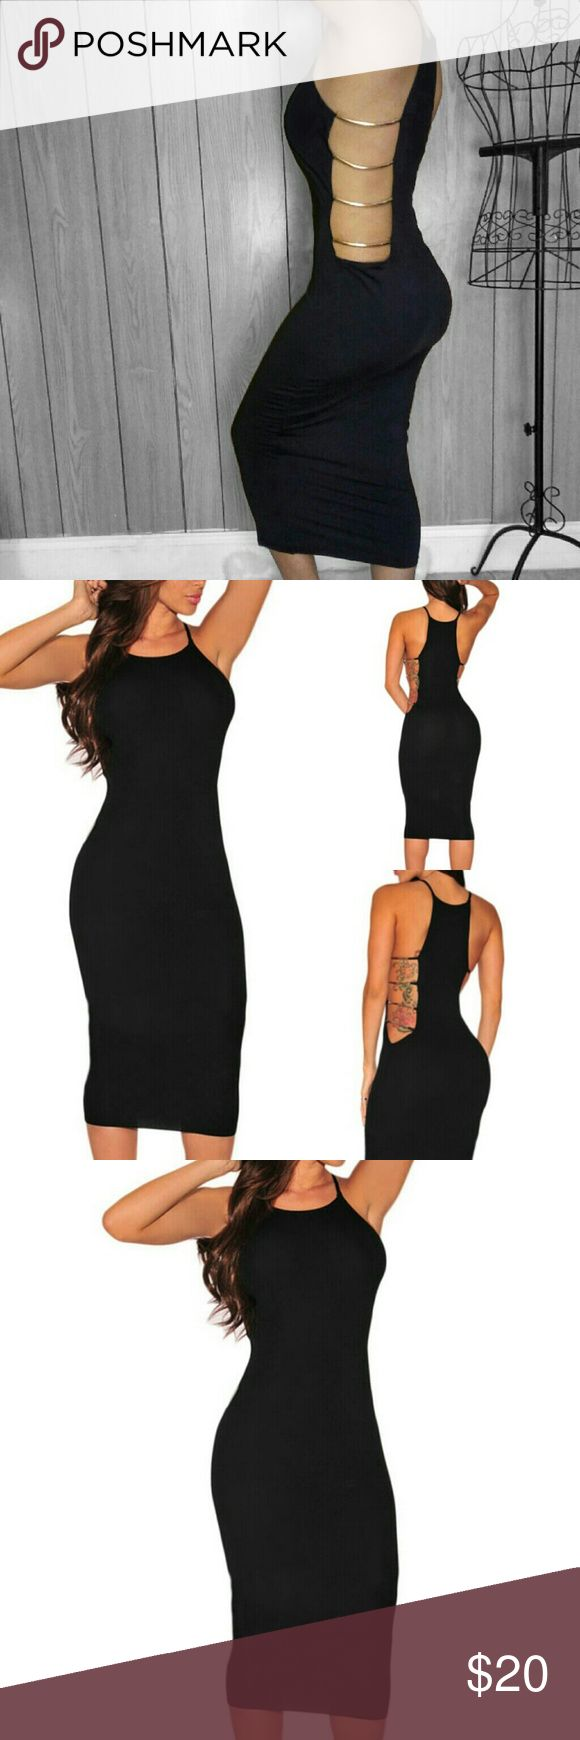 LAST S Black & Gold Caged Sides Little Black Dress HOT HOT HOT!  Your new go-to LBD is this Little black dress with Gold Hardware Cut Out Sides! Slip into this curve flattering little number on your next girls night out or date night! Midi length. Very smooth & soft fabric. The cut out sides give your body the most flattering, waist trimming shape! And they don't dig into your body or make you uncomfortable!  Dress this already elegant dress up with high heels & clutch! NIP Material…